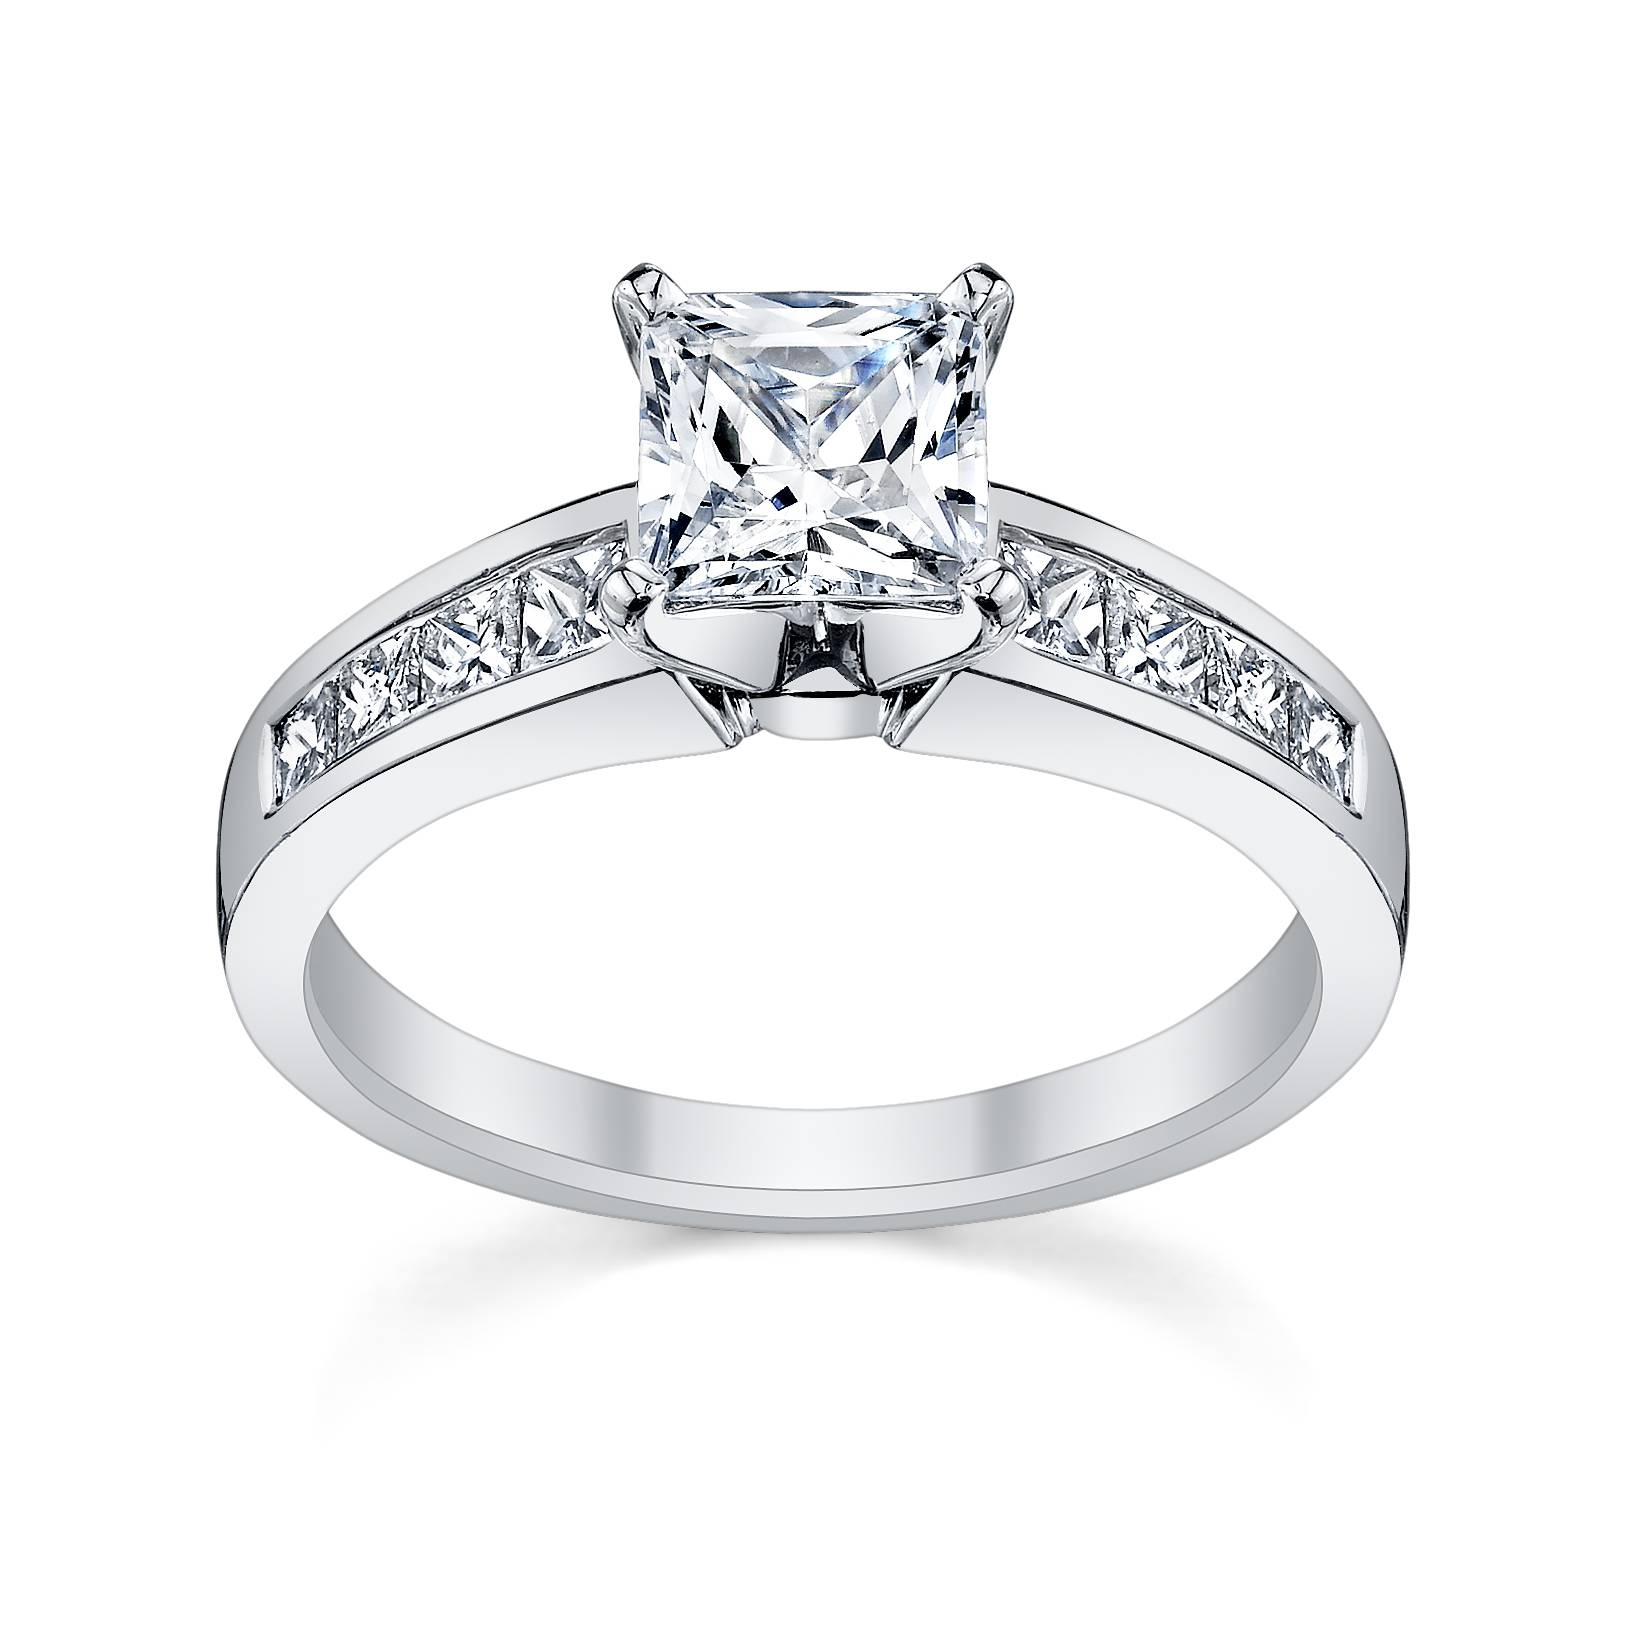 Wedding Rings : Princess Cut Diamond Engagement Ring And Wedding Intended For Princess Cut Diamond Wedding Rings (Gallery 3 of 15)